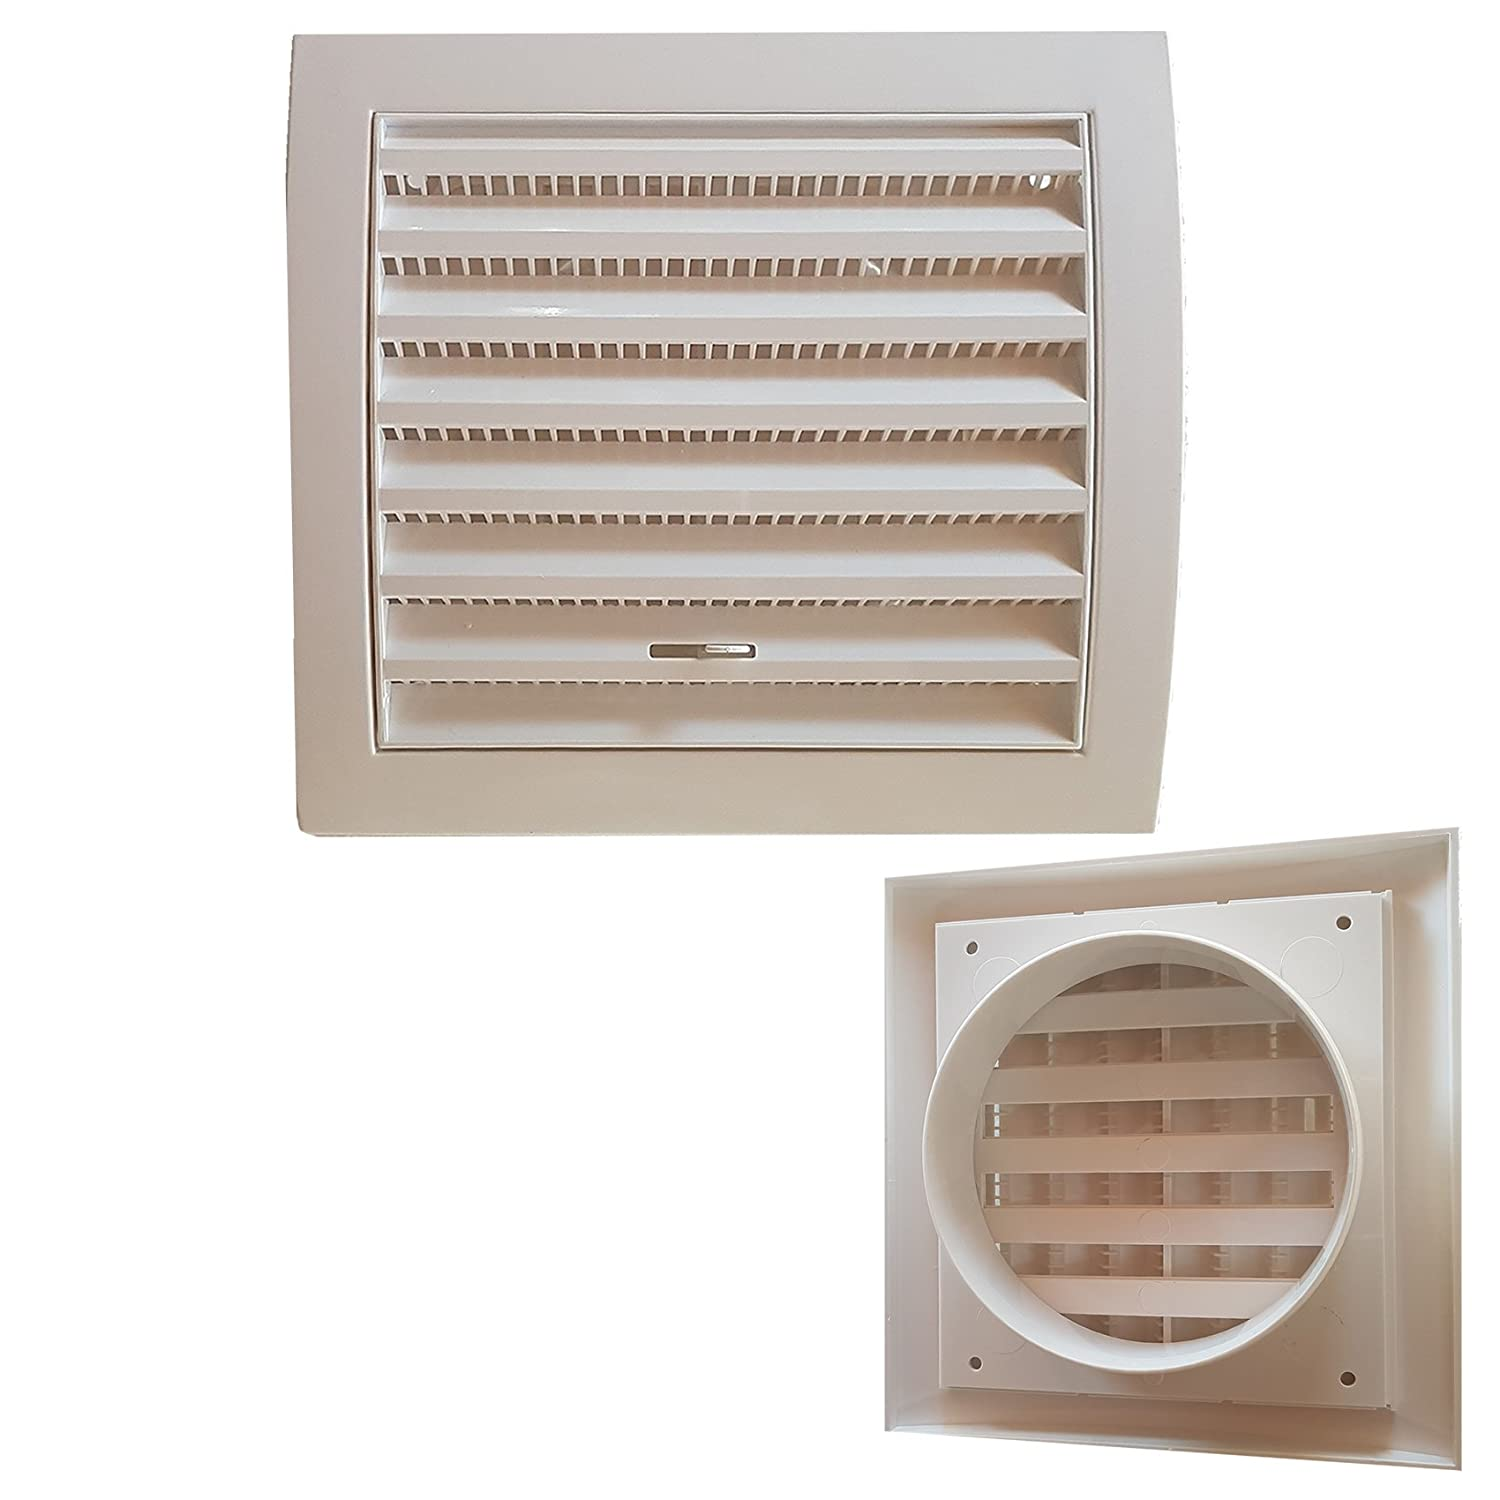 Grill Corrugato Ventilation Air Vent Flow Adjustable Square 15  x 15  with imbocco 100  mm DAKOTA